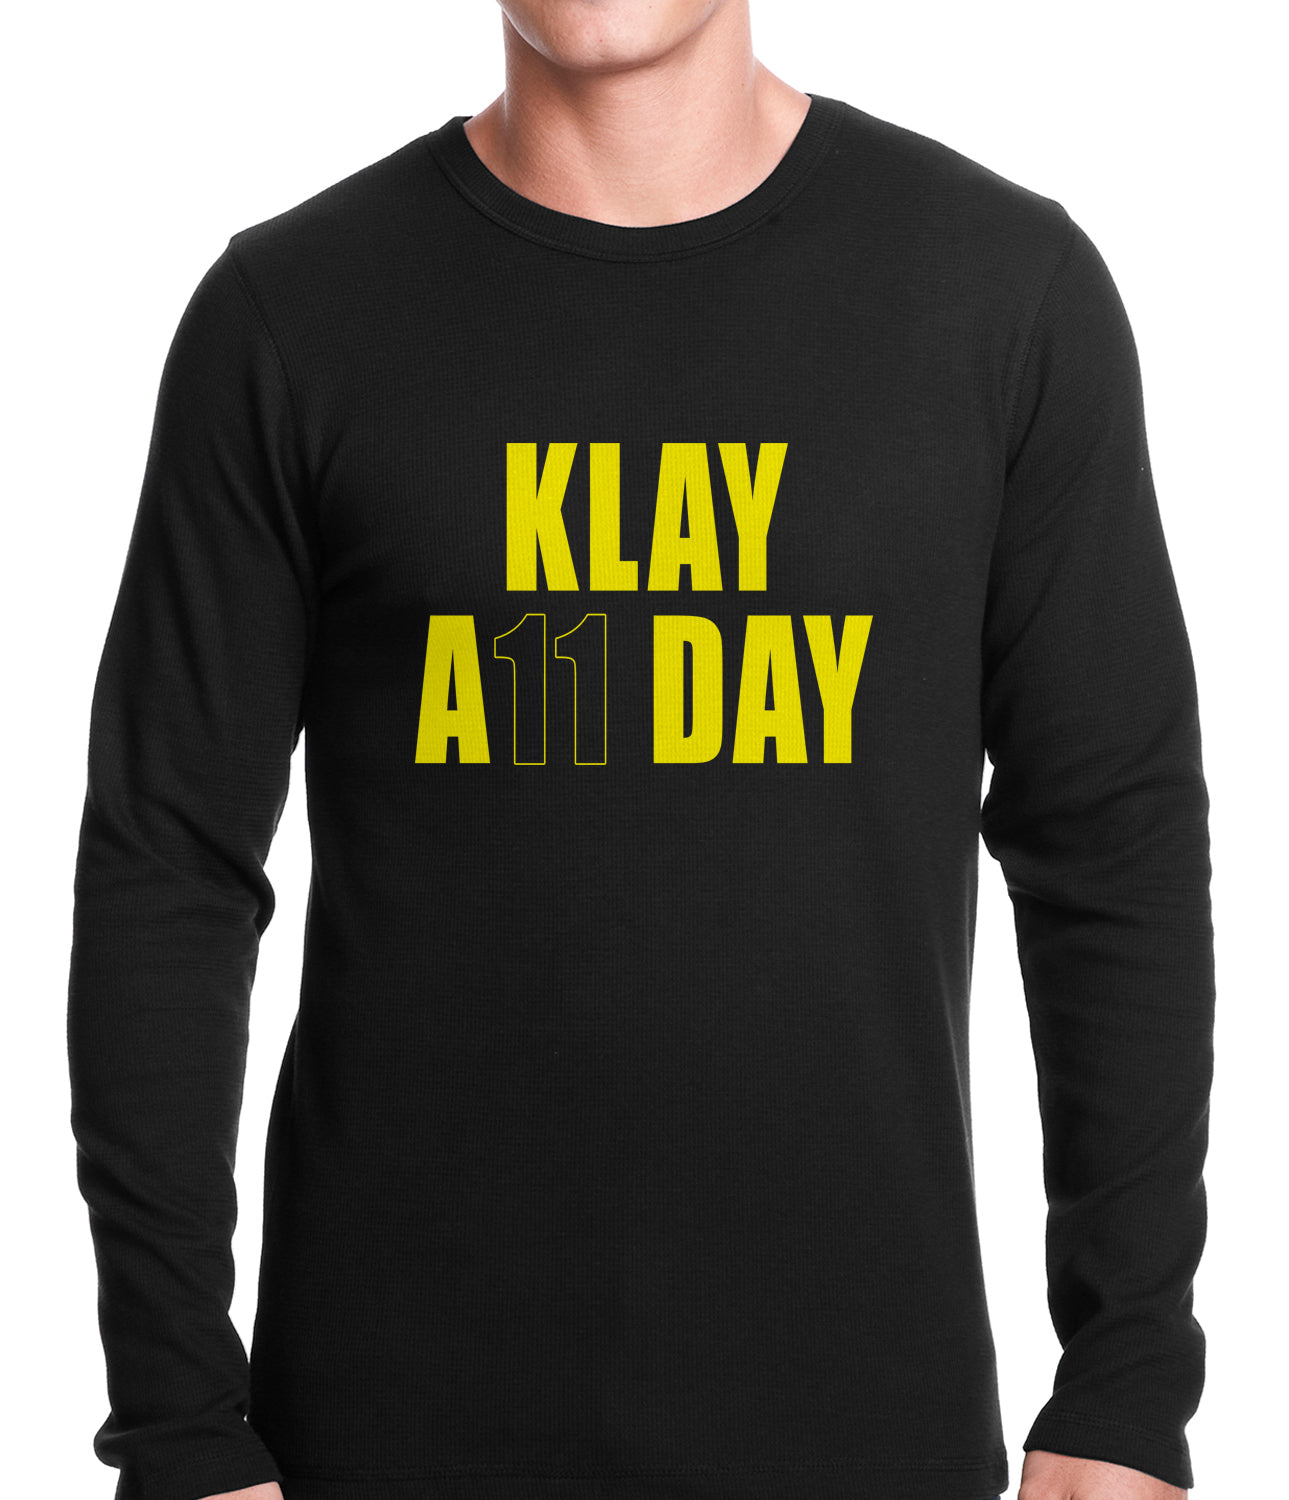 Klay All Day Thermal Shirt